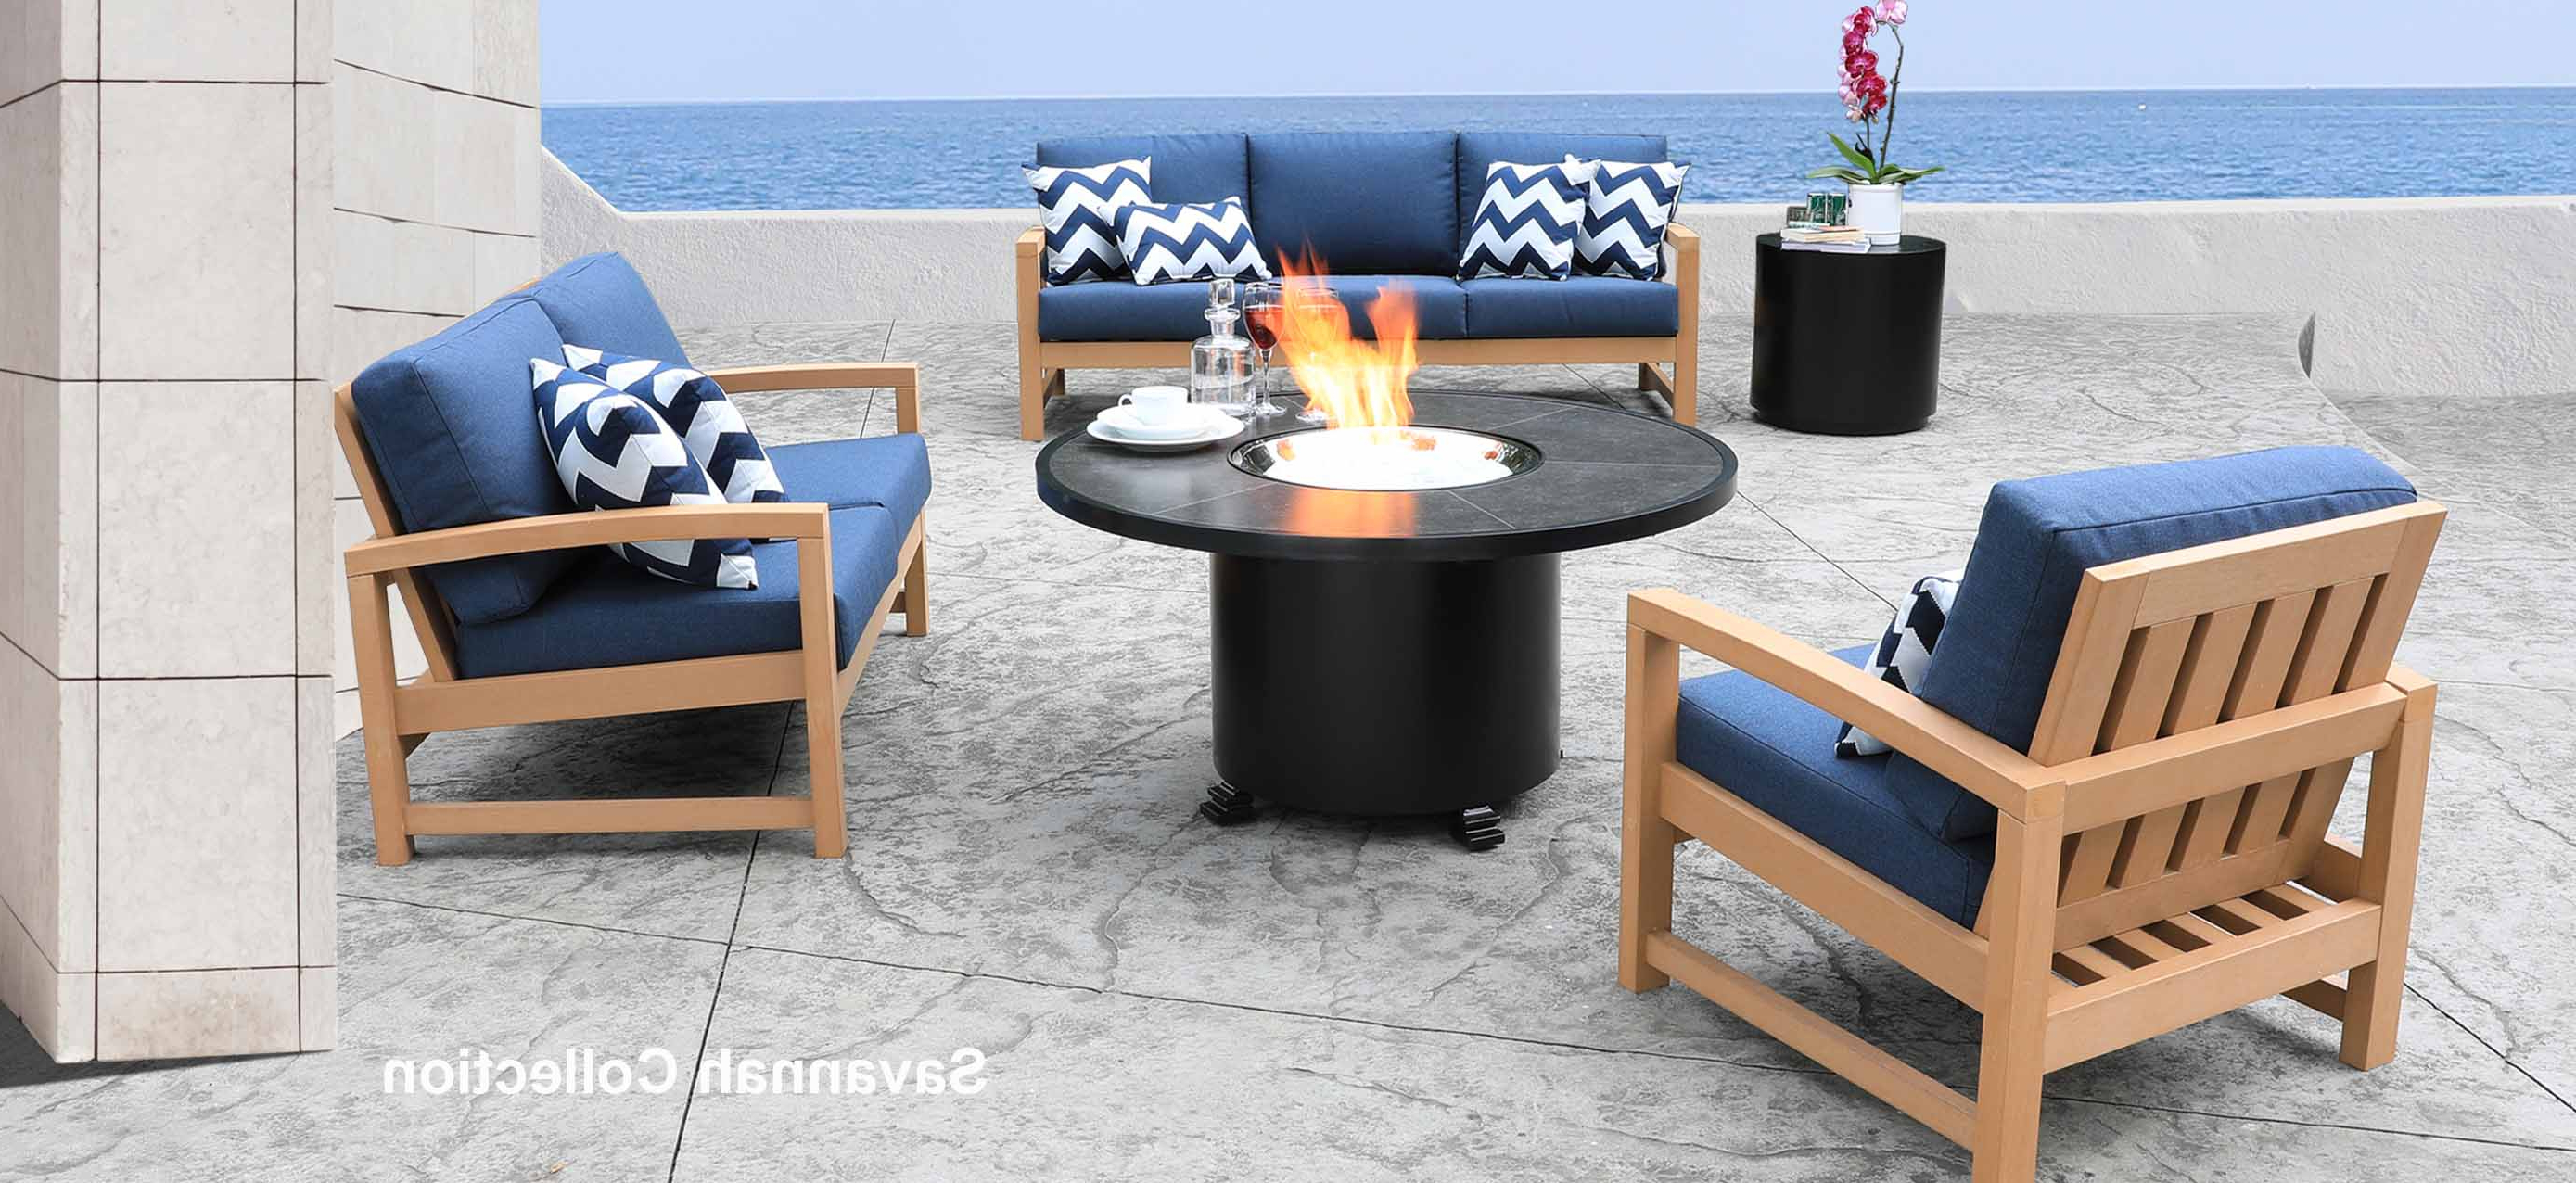 Fashionable Wood Blue And White Cushion Outdoor Chaise Lounge Chairs Pertaining To Shop Patio Furniture At Cabanacoast® (View 10 of 25)